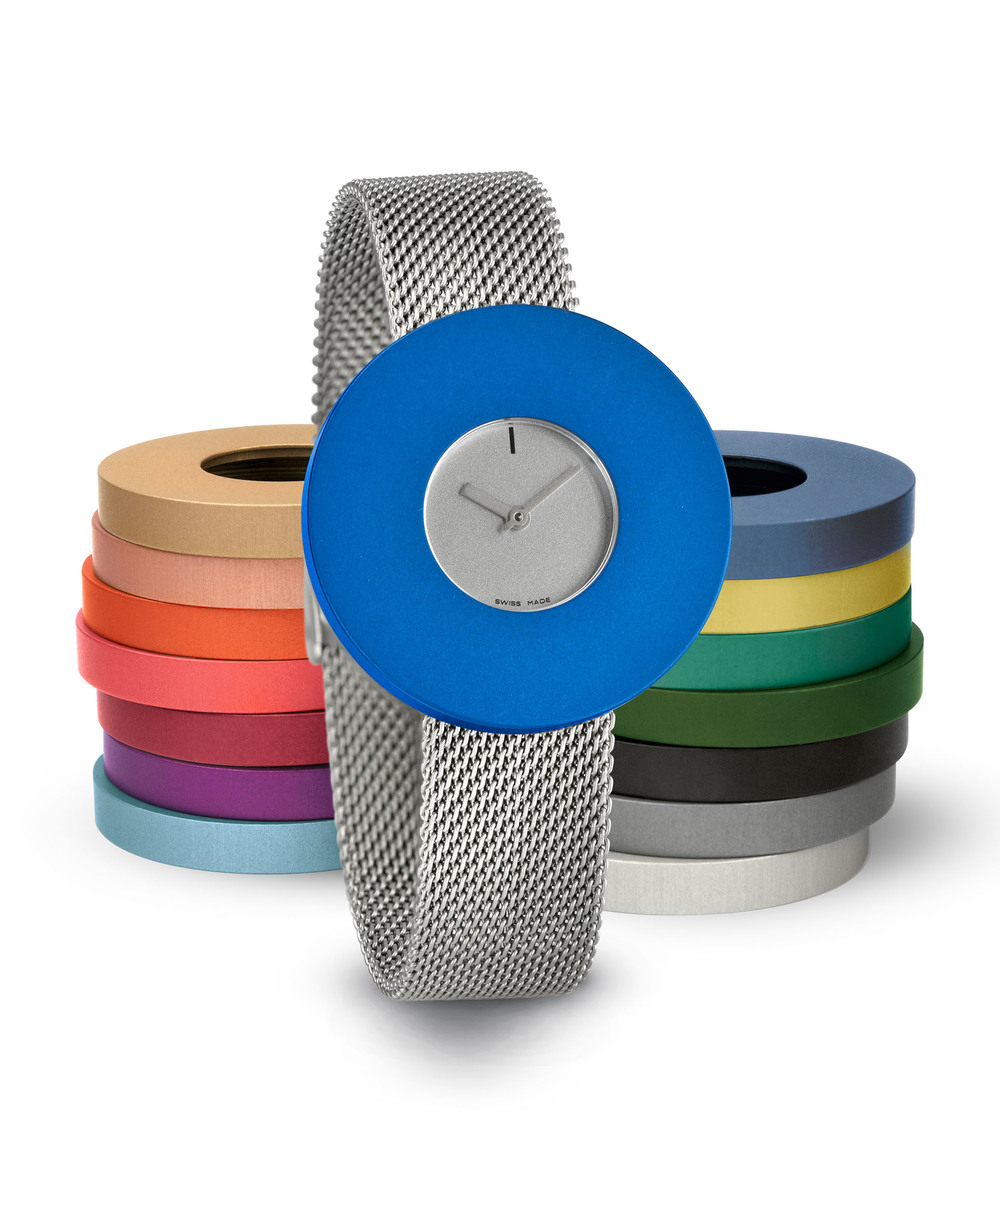 Junod-Vignelli MV Dot silver_dial blue_ring milanais_band-small.JPG